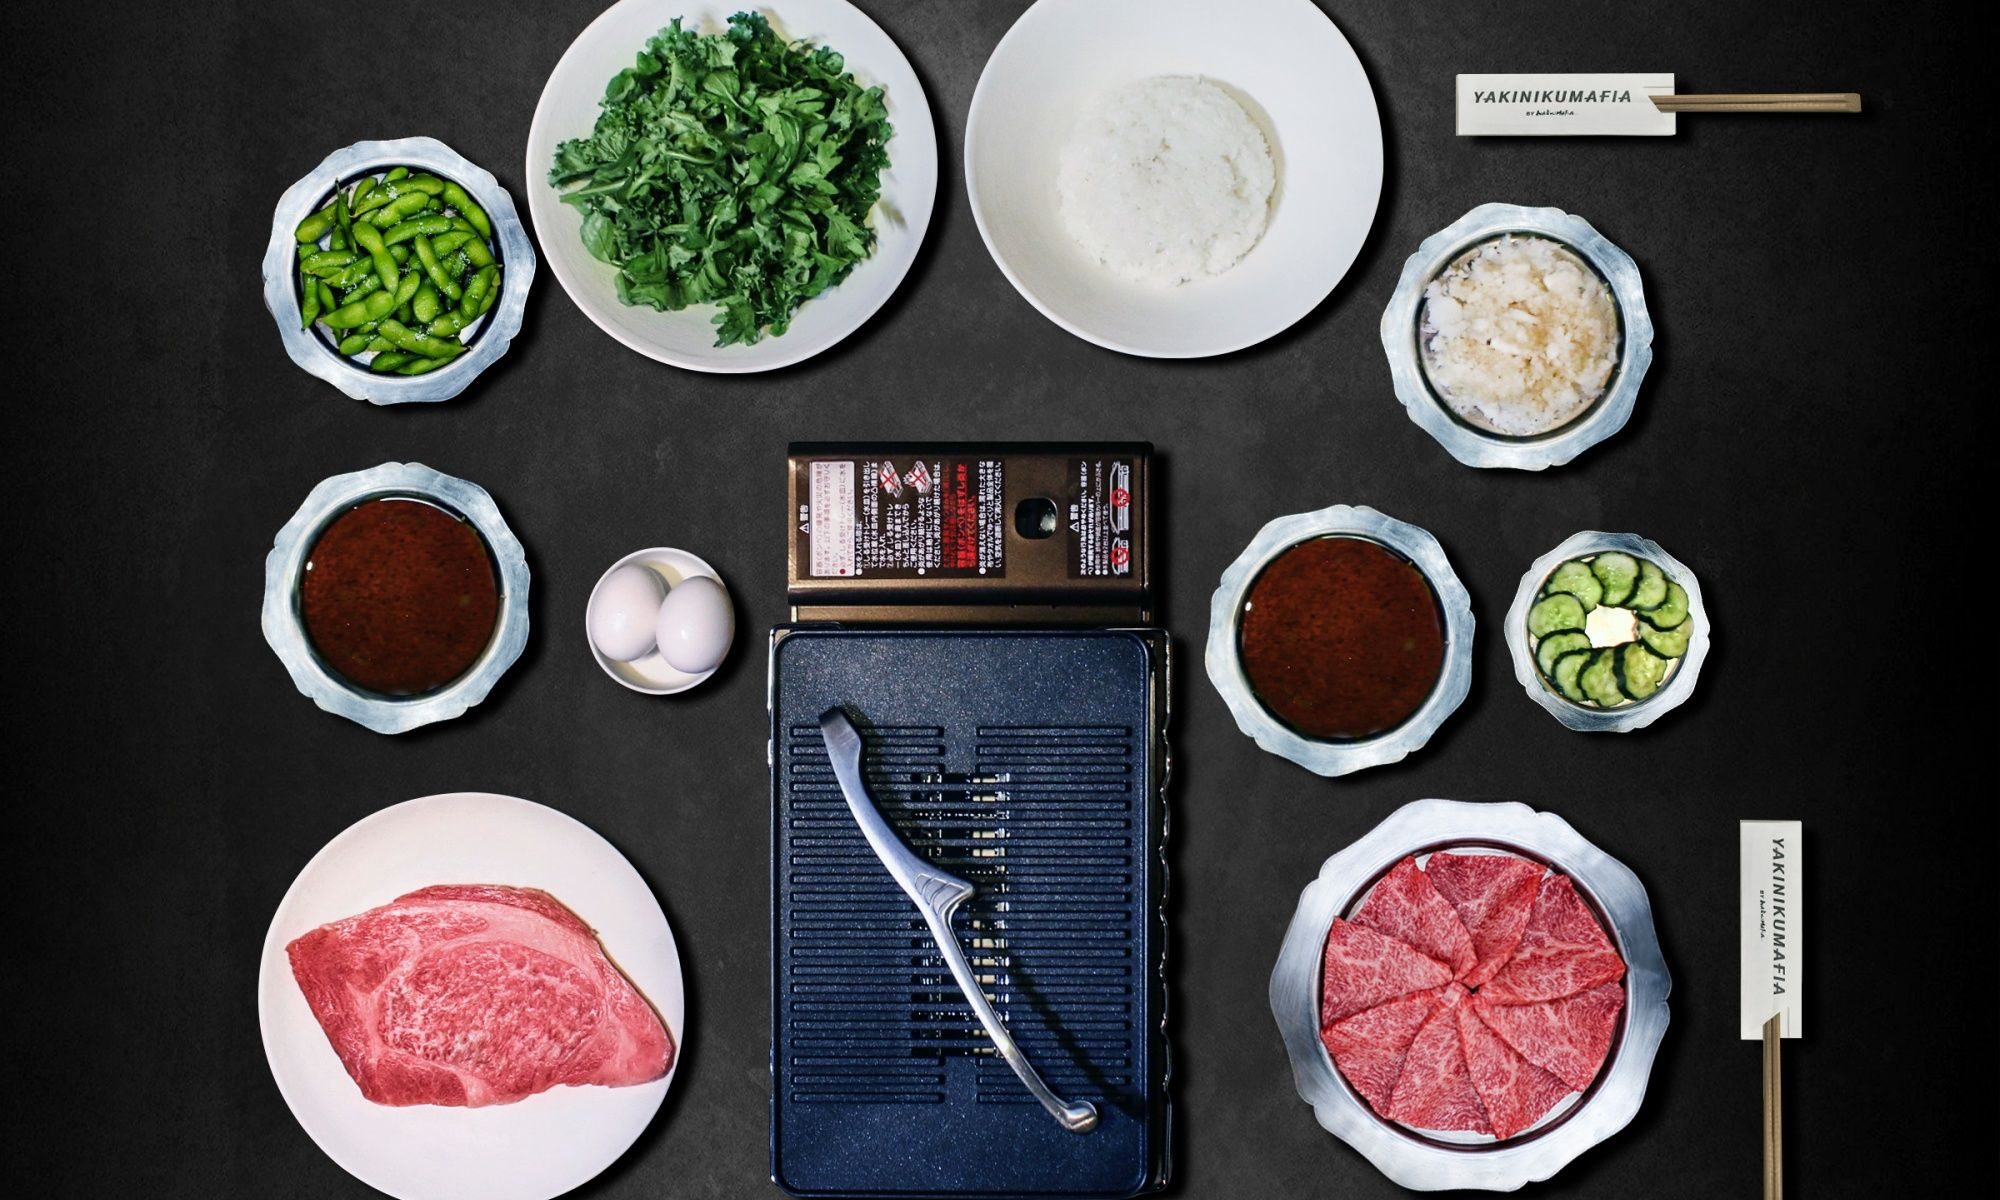 How to Recreate the Yakinikumafia Wagyu Yakiniku Experience At Home